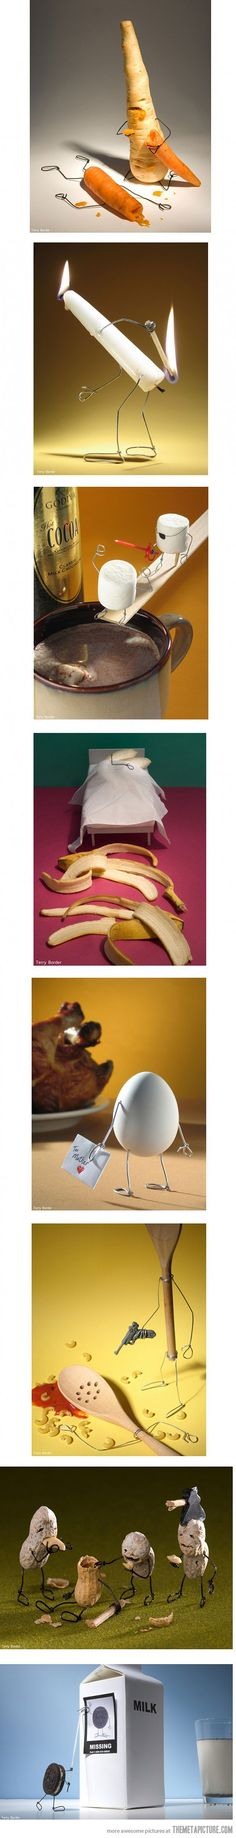 Objects come to life...love the bananas